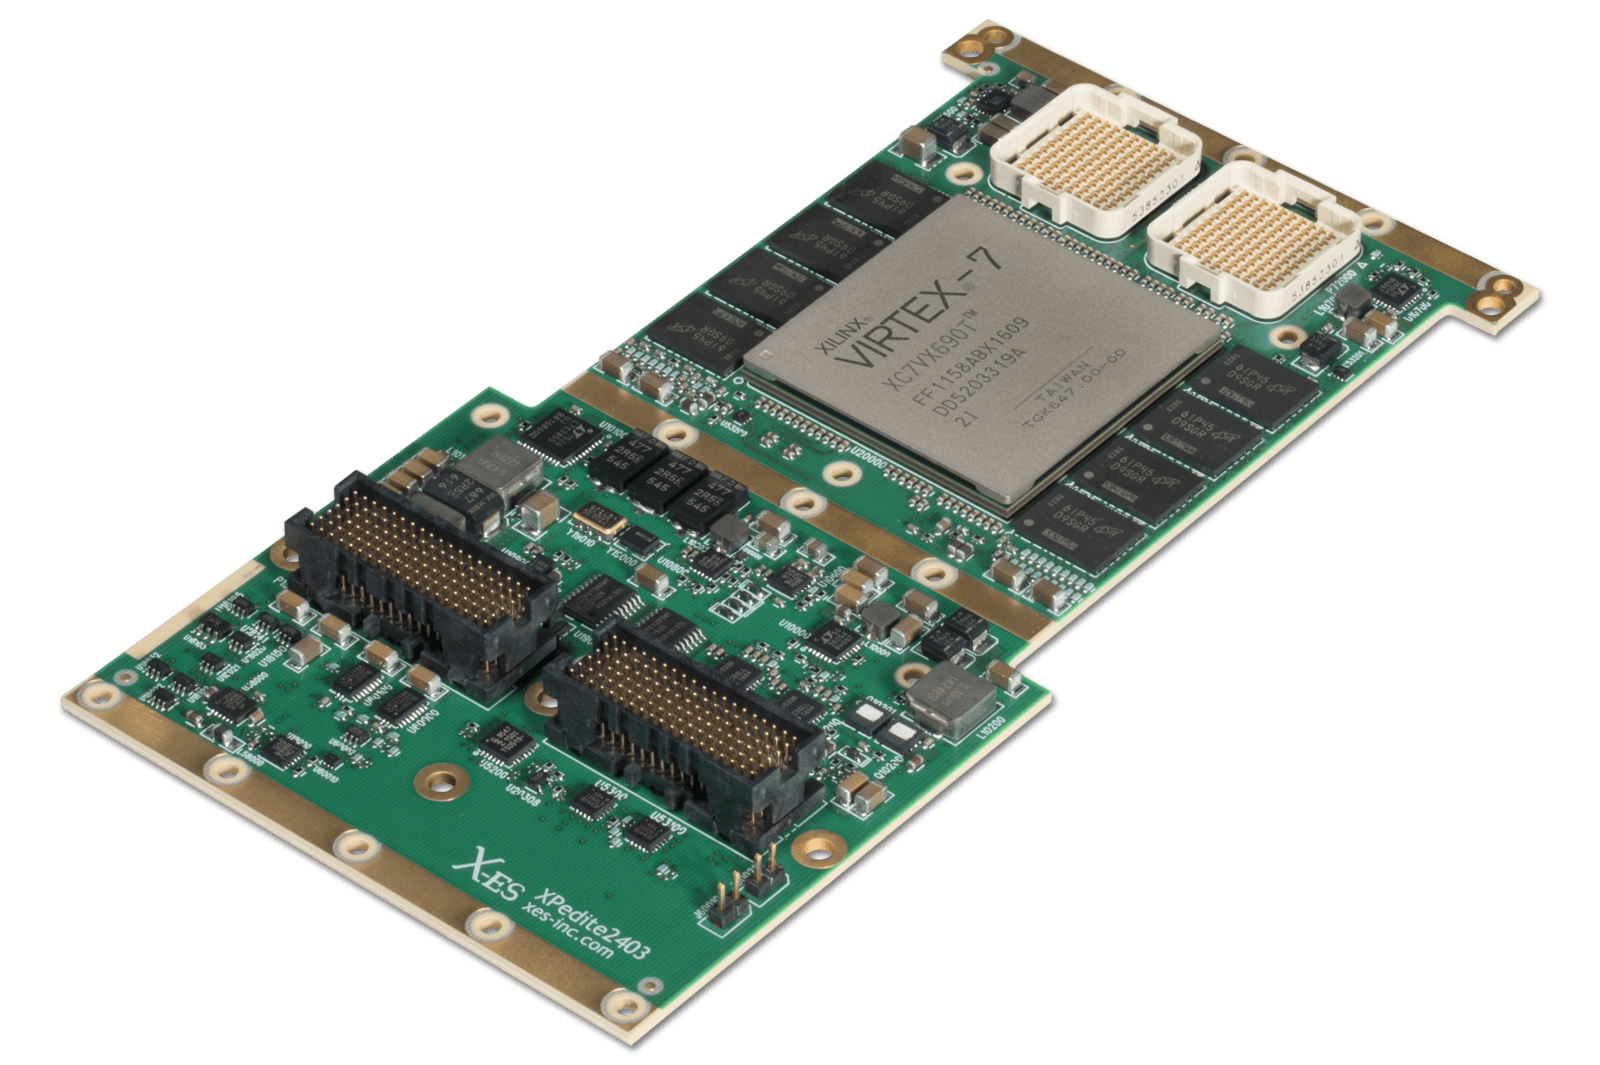 hight resolution of xpedite2403 xmc fpga module description features technical specs accessories documentation block diagram